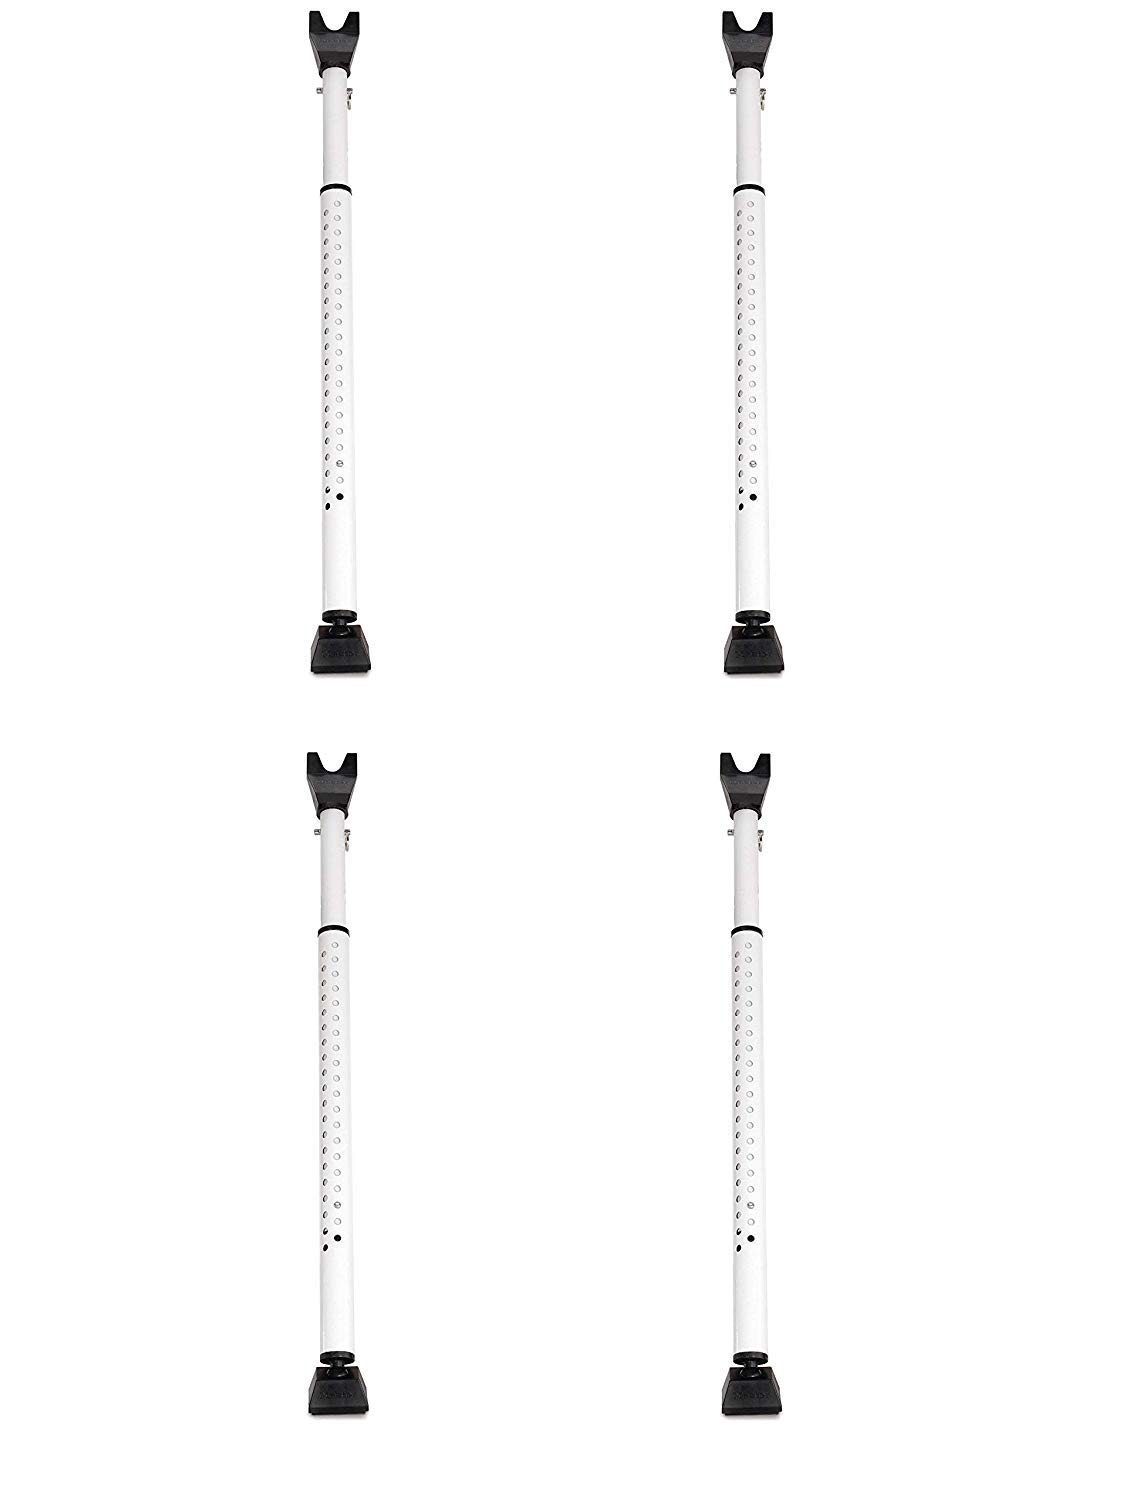 Master Lock 265D Door Security Bar, Adjustable from 27-1/2 in. to 44-1/2 in, White, (Pack of 4)